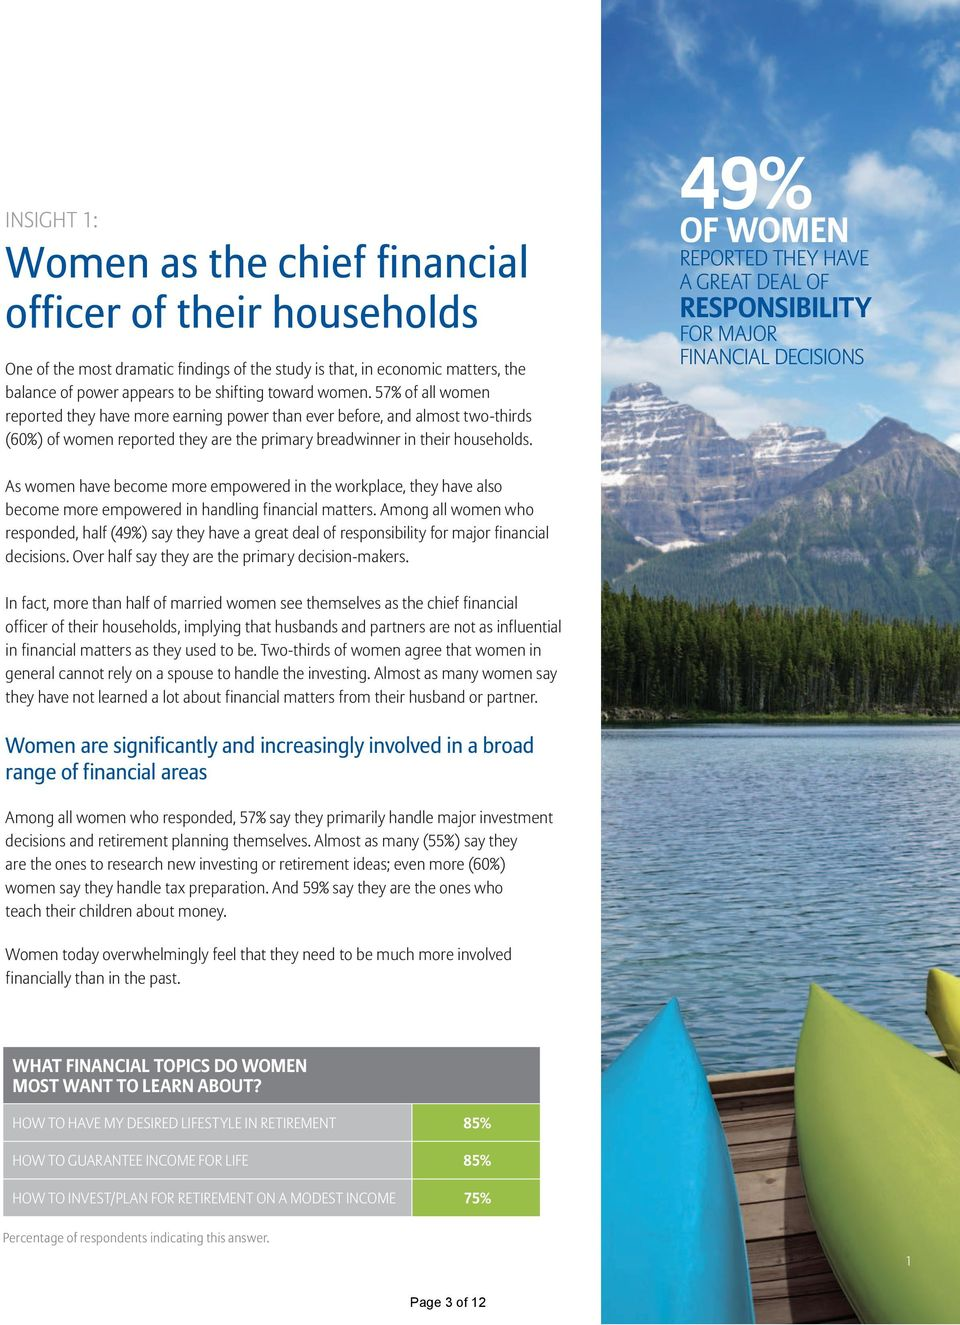 49% OF WOMEN REPORTED THEY HAVE A GREAT DEAL OF RESPONSIBILITY FOR MAJOR FINANCIAL DECISIONS As women have become more empowered in the workplace, they have also become more empowered in handling